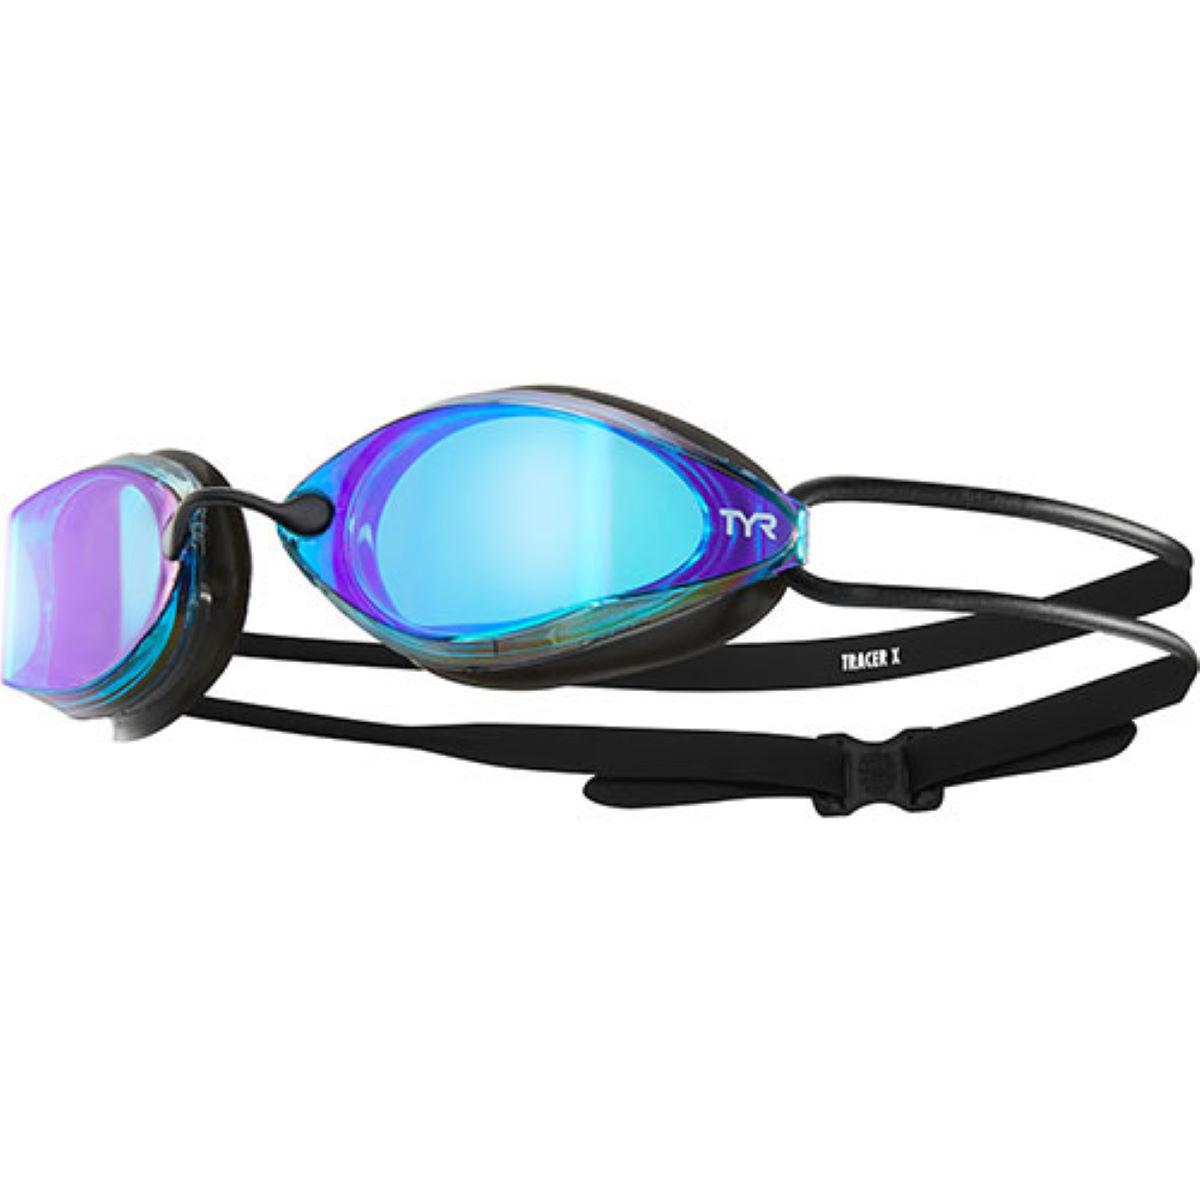 Tyr Tracer X Racing Mirrored Goggles - One Size Blue/black/black